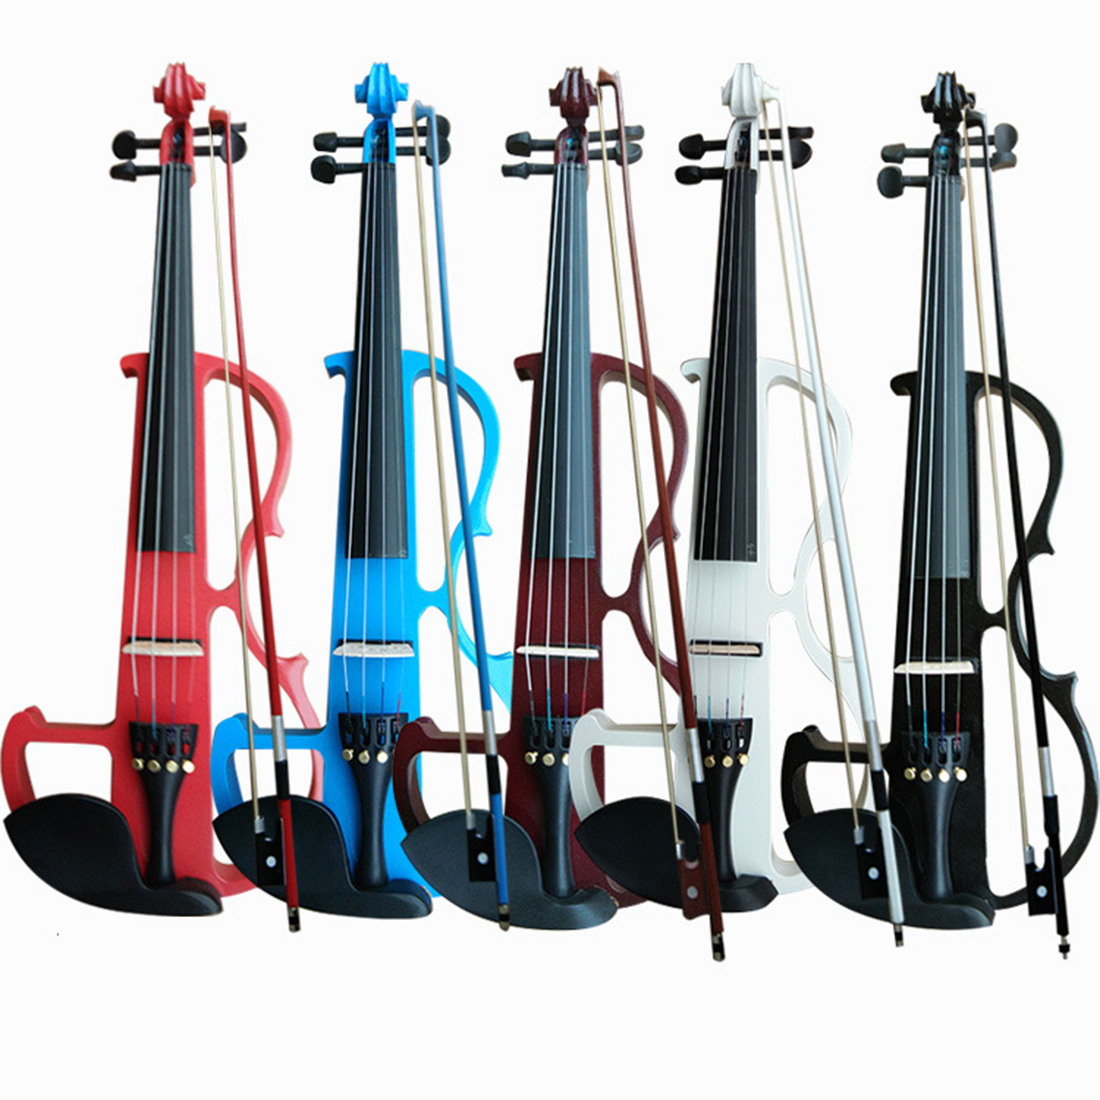 Children Beginner Electric Violin Musical Instrument 4/4 Violin Playable Instrument For Children - Wine Red/Blue/Black/Red/White image